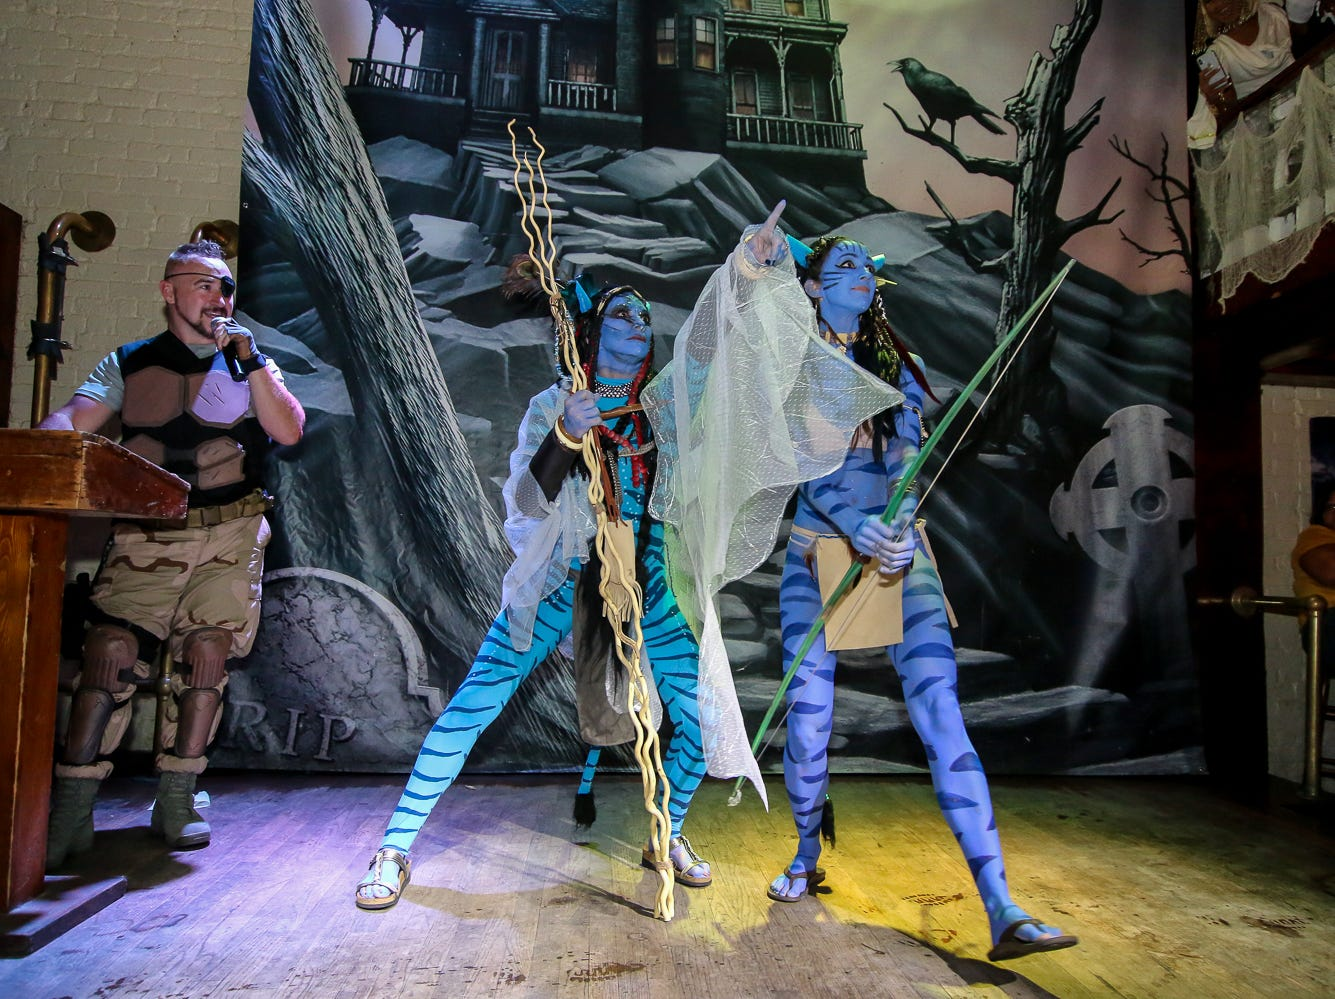 """Avatar"" won 13th place in the $1,000 grand prize Halloween costume contest, which featured over 100 entrants, at Seville Quarter on Wednesday, October 31, 2018."